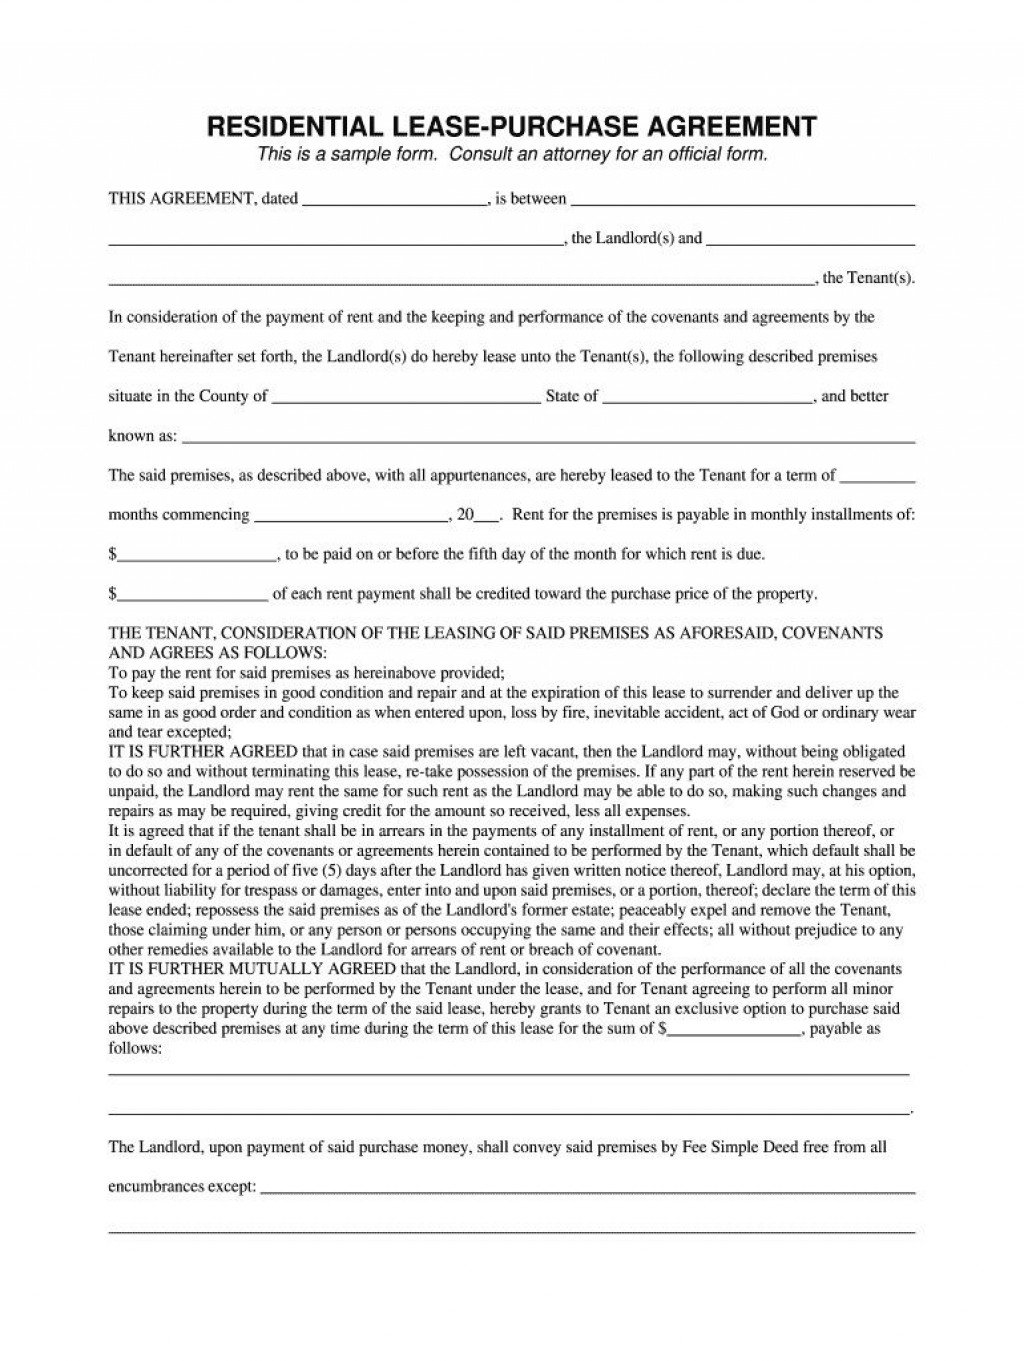 004 Best Rent To Own Template Design  Lease Agreement Canada ExampleLarge